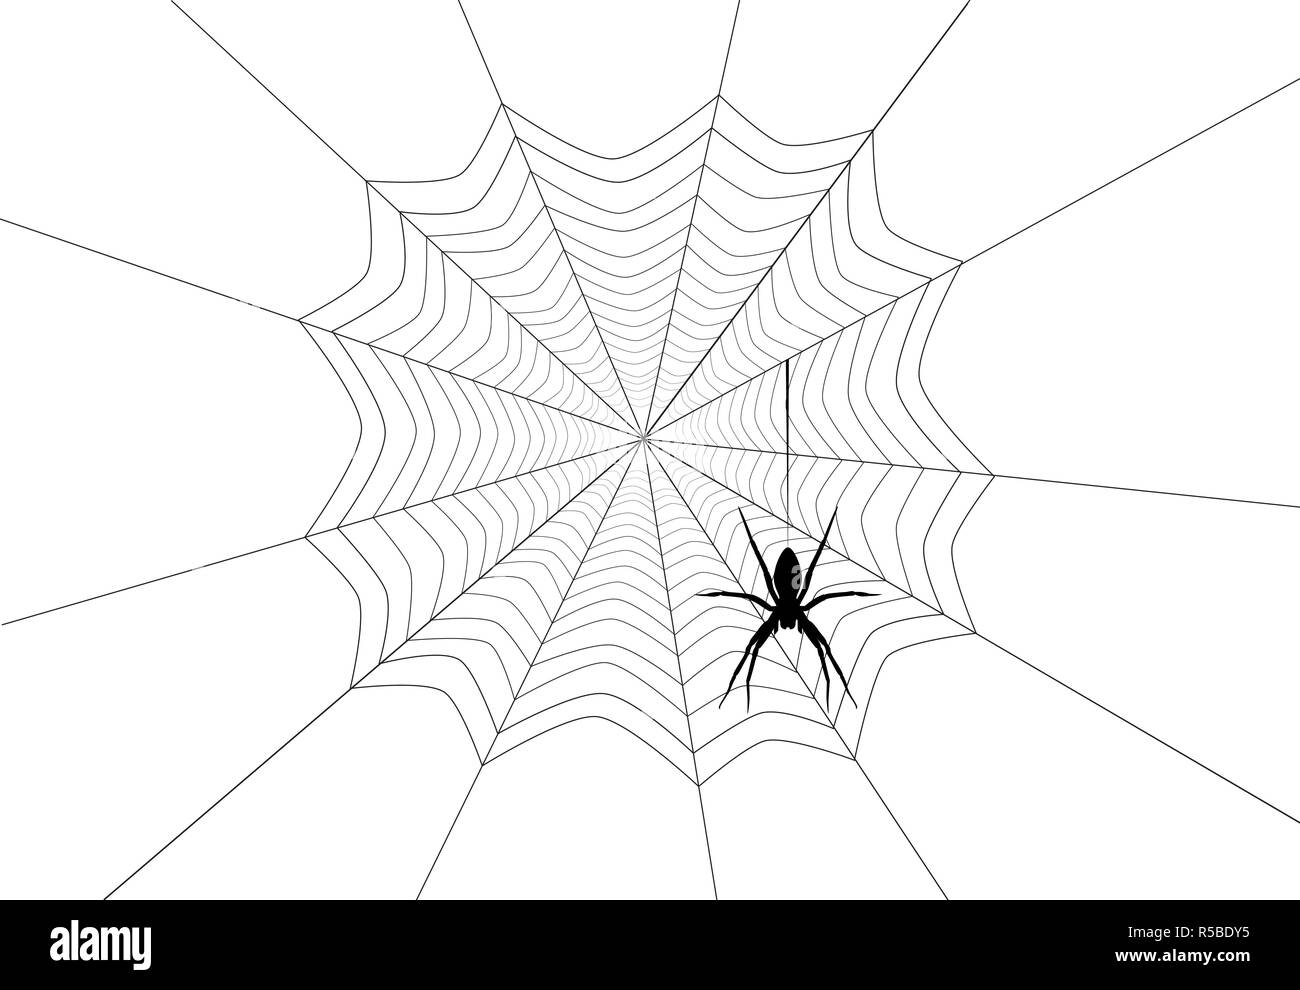 Spider Black Silhouette Hanging On Web Isolated On White